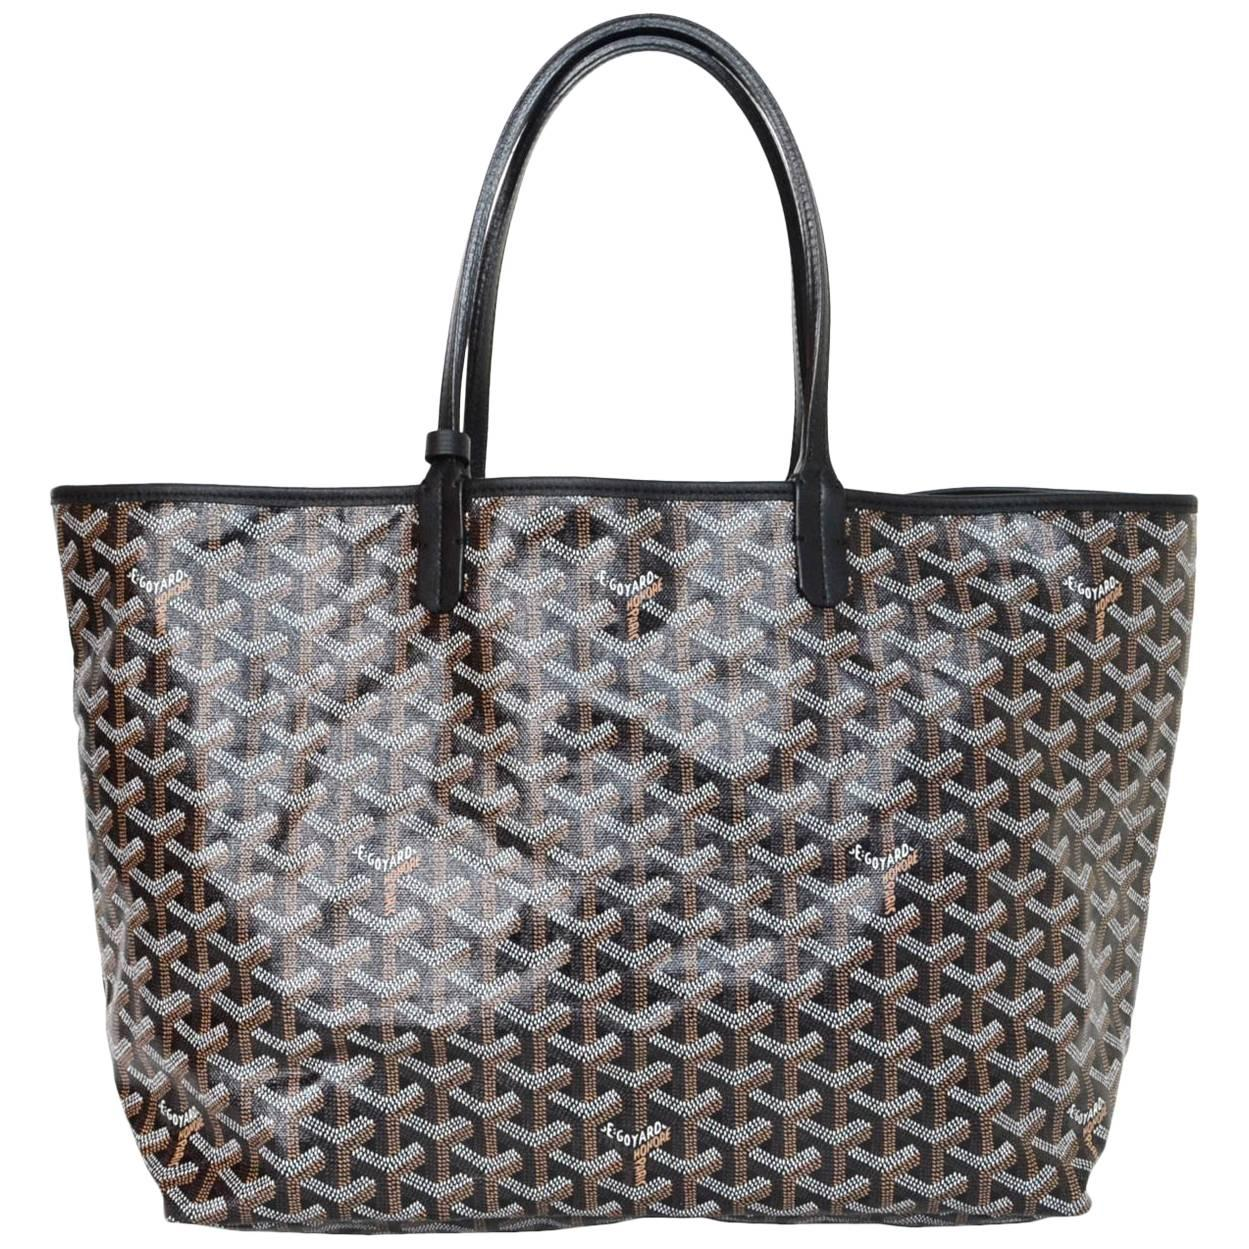 1stdibs Goyard Red And Bordeaux Saint Louis Jr. Tote Bag FYN23Jx7